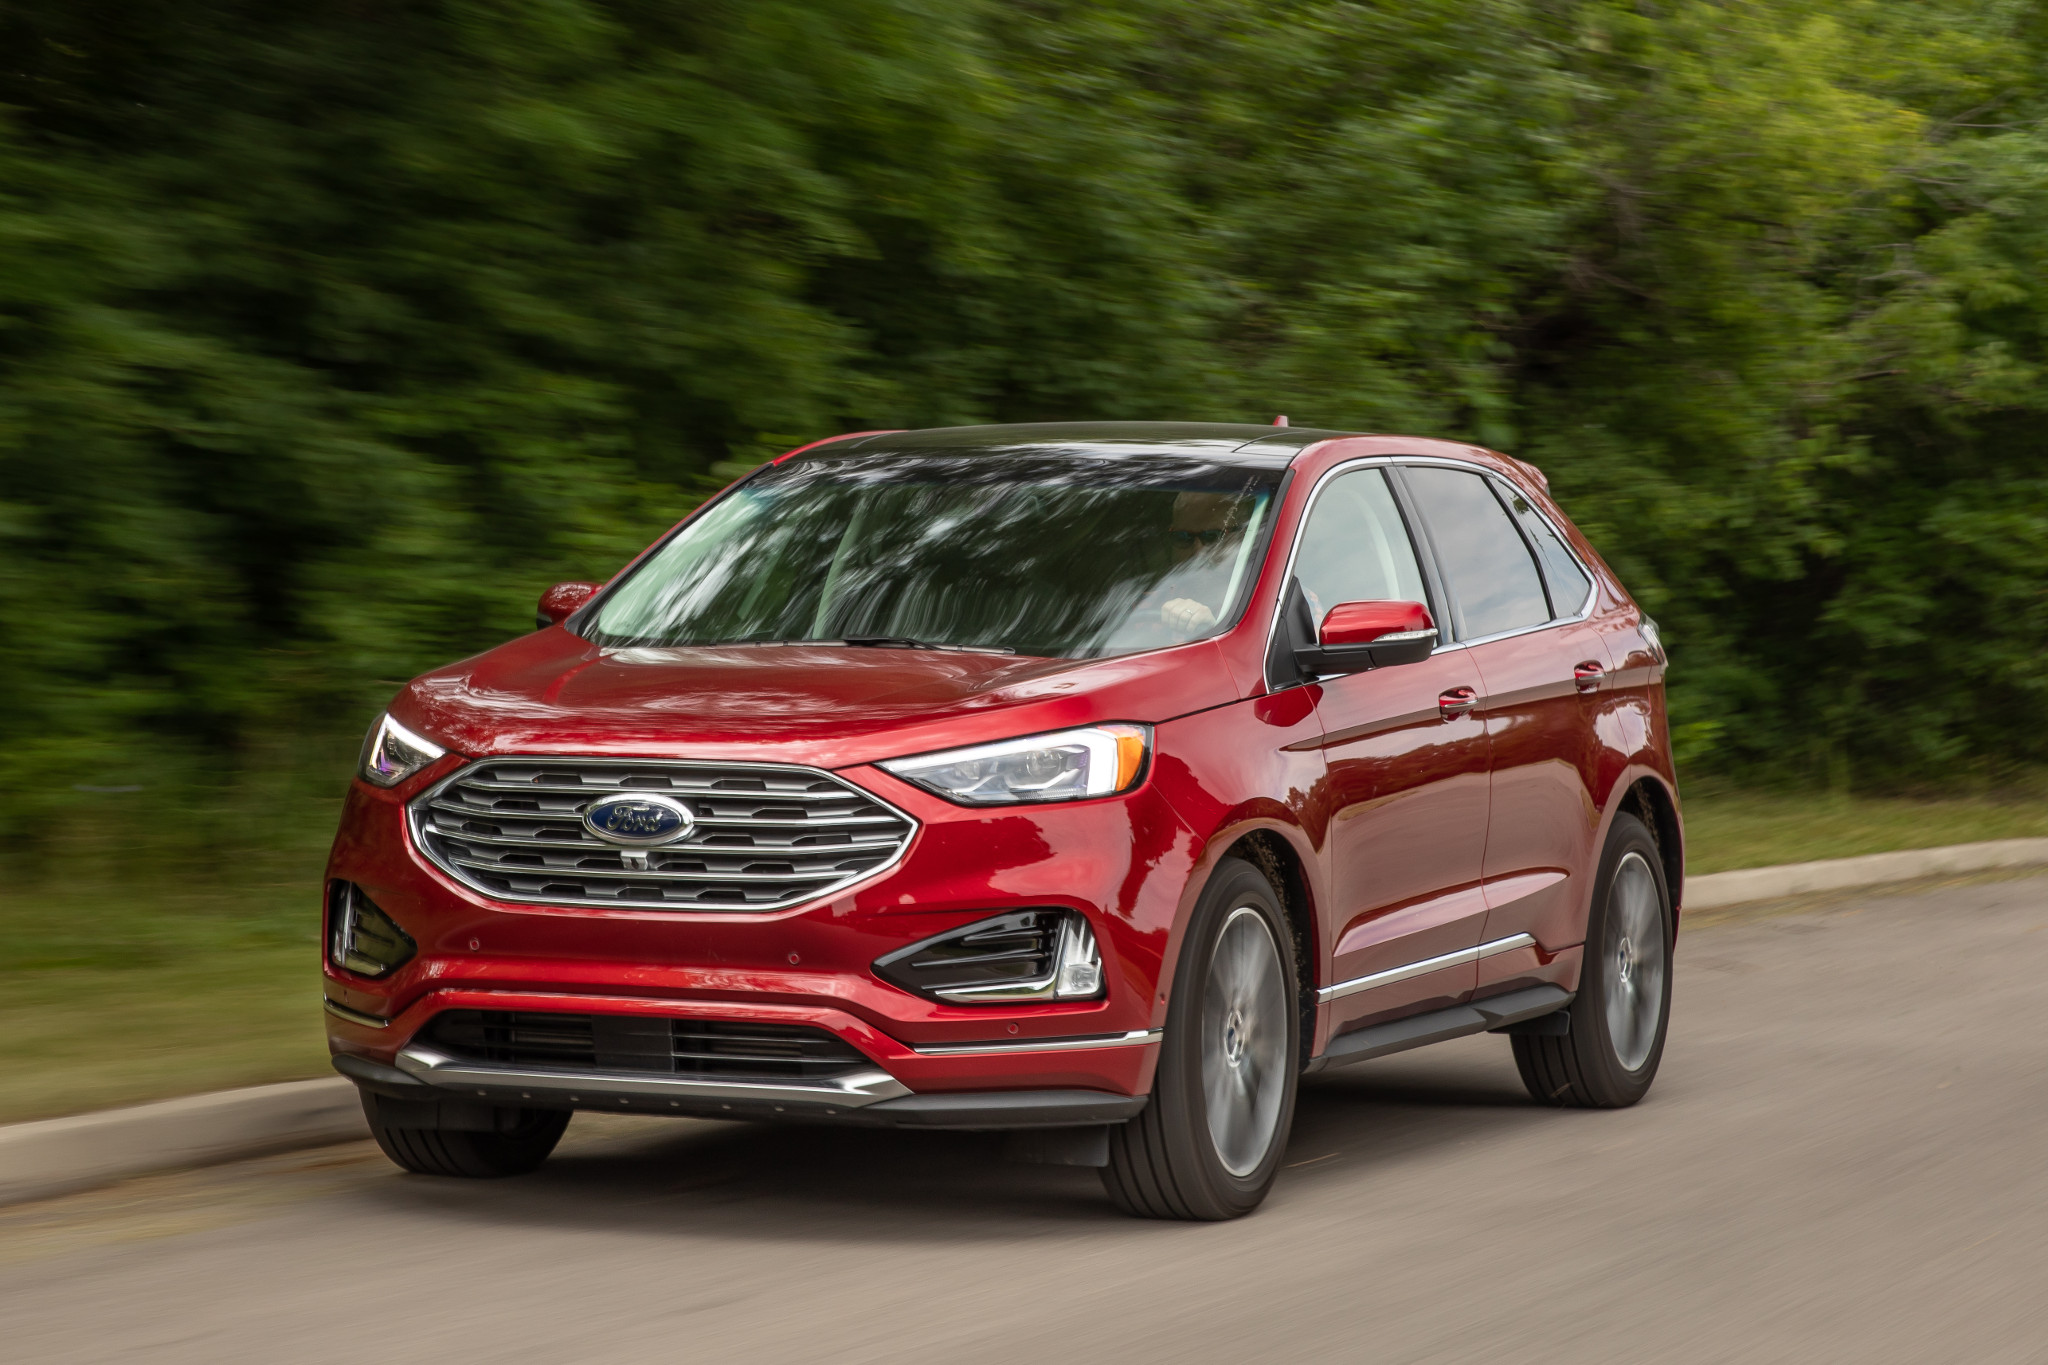 2019 Ford Edge: 6 Things We Like and 4 Not So Much